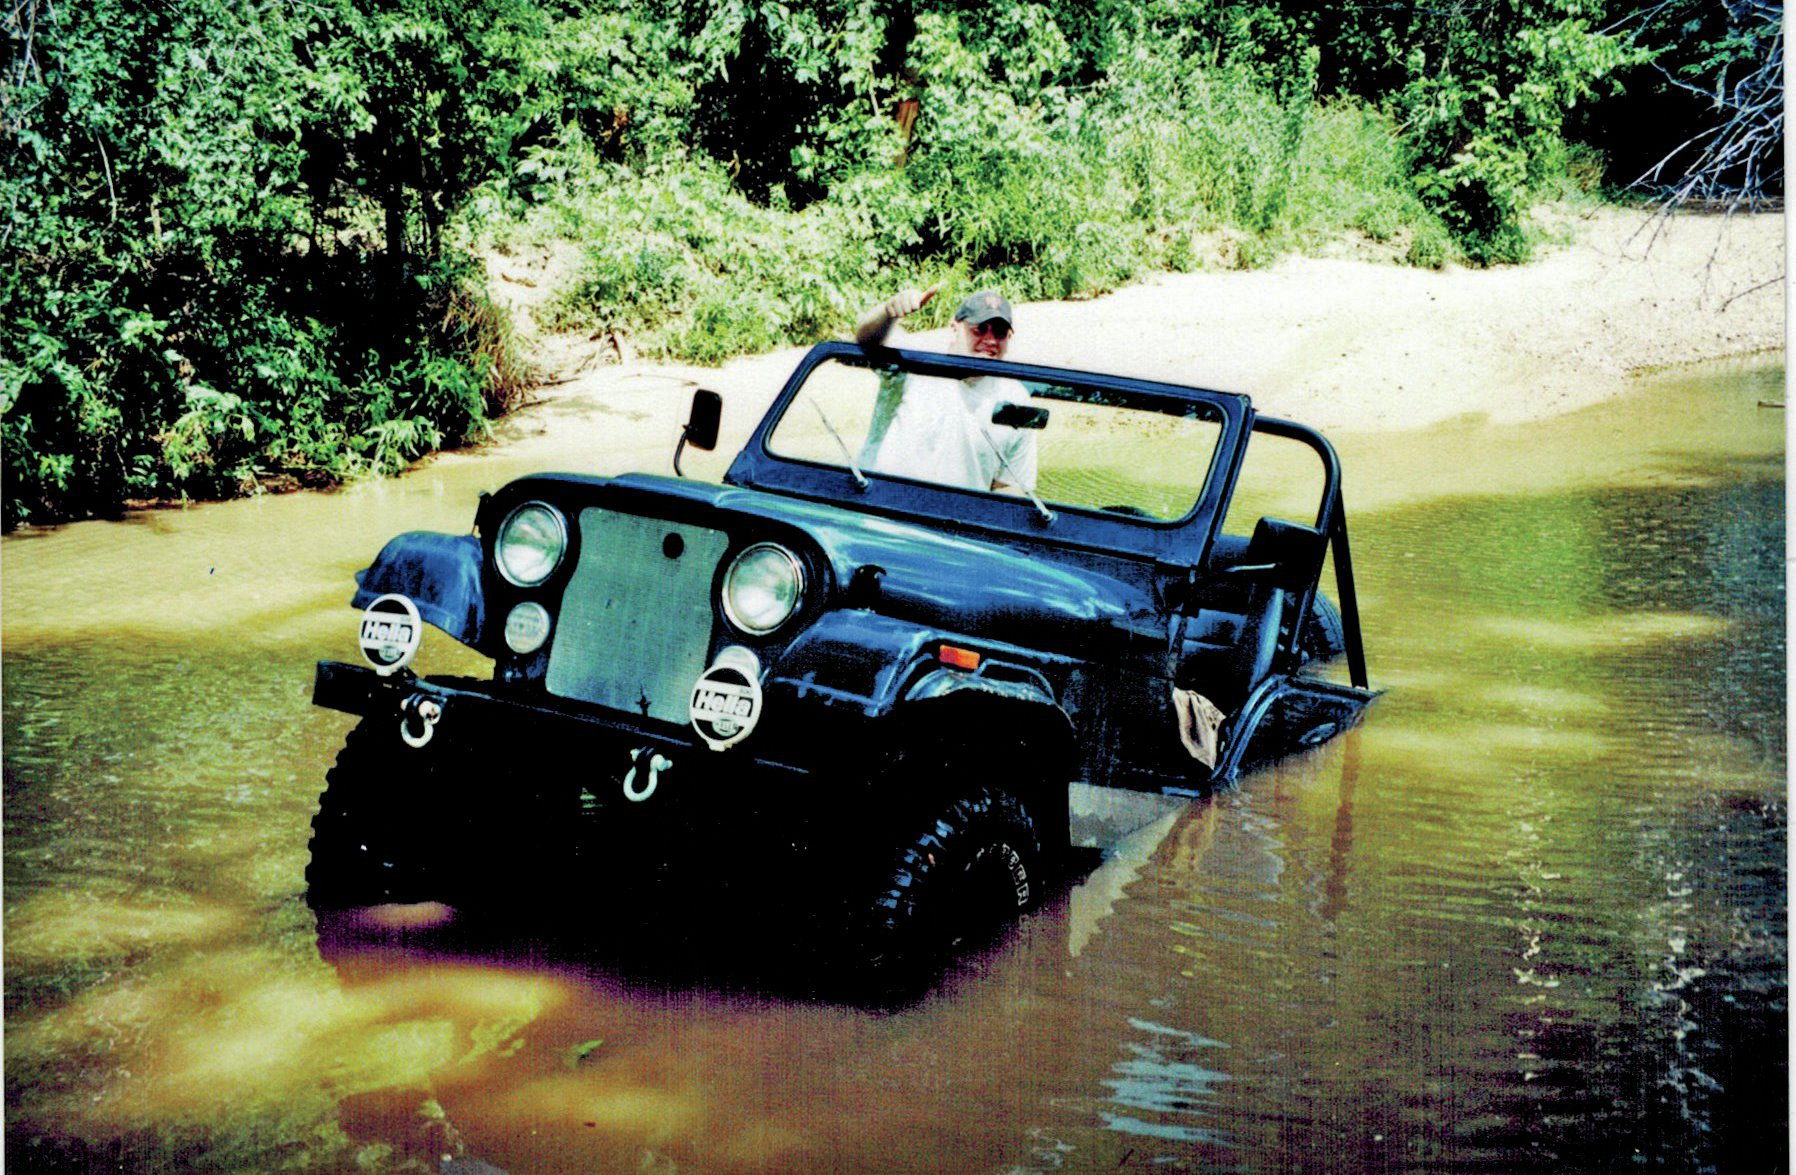 It's a Floater Another Kentucky round: This is Jonathan Poe's Jeep in Soldier Creek in Benton, Kentucky. Jonathan said he'd run the creek many times but somehow managed to get off-line a bit and floated the wrong way. And kept floating. And floating.